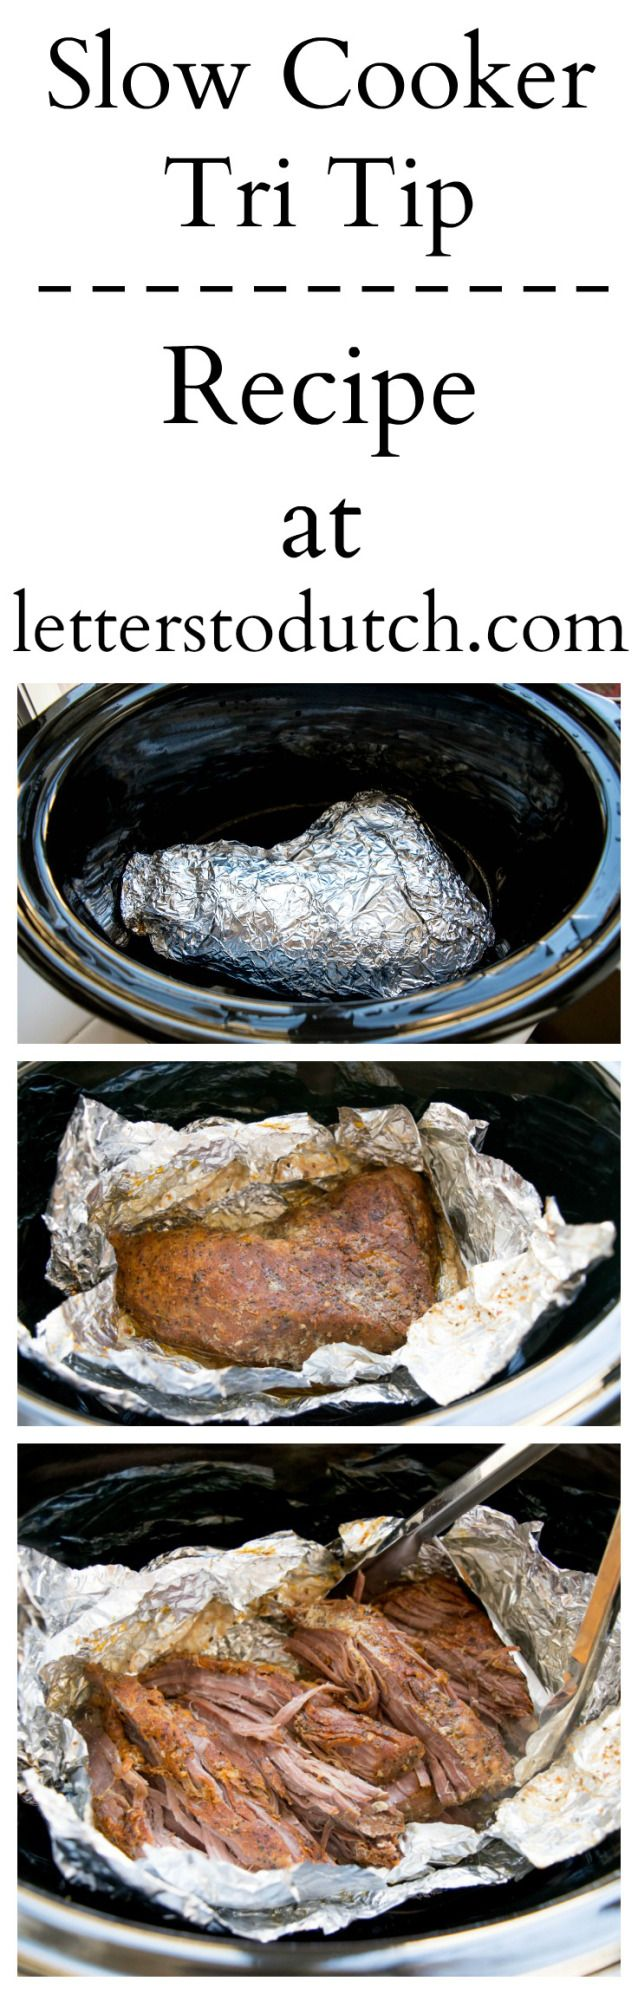 Tri-tip in the Crock-Pot 4 hours 1.5lbs